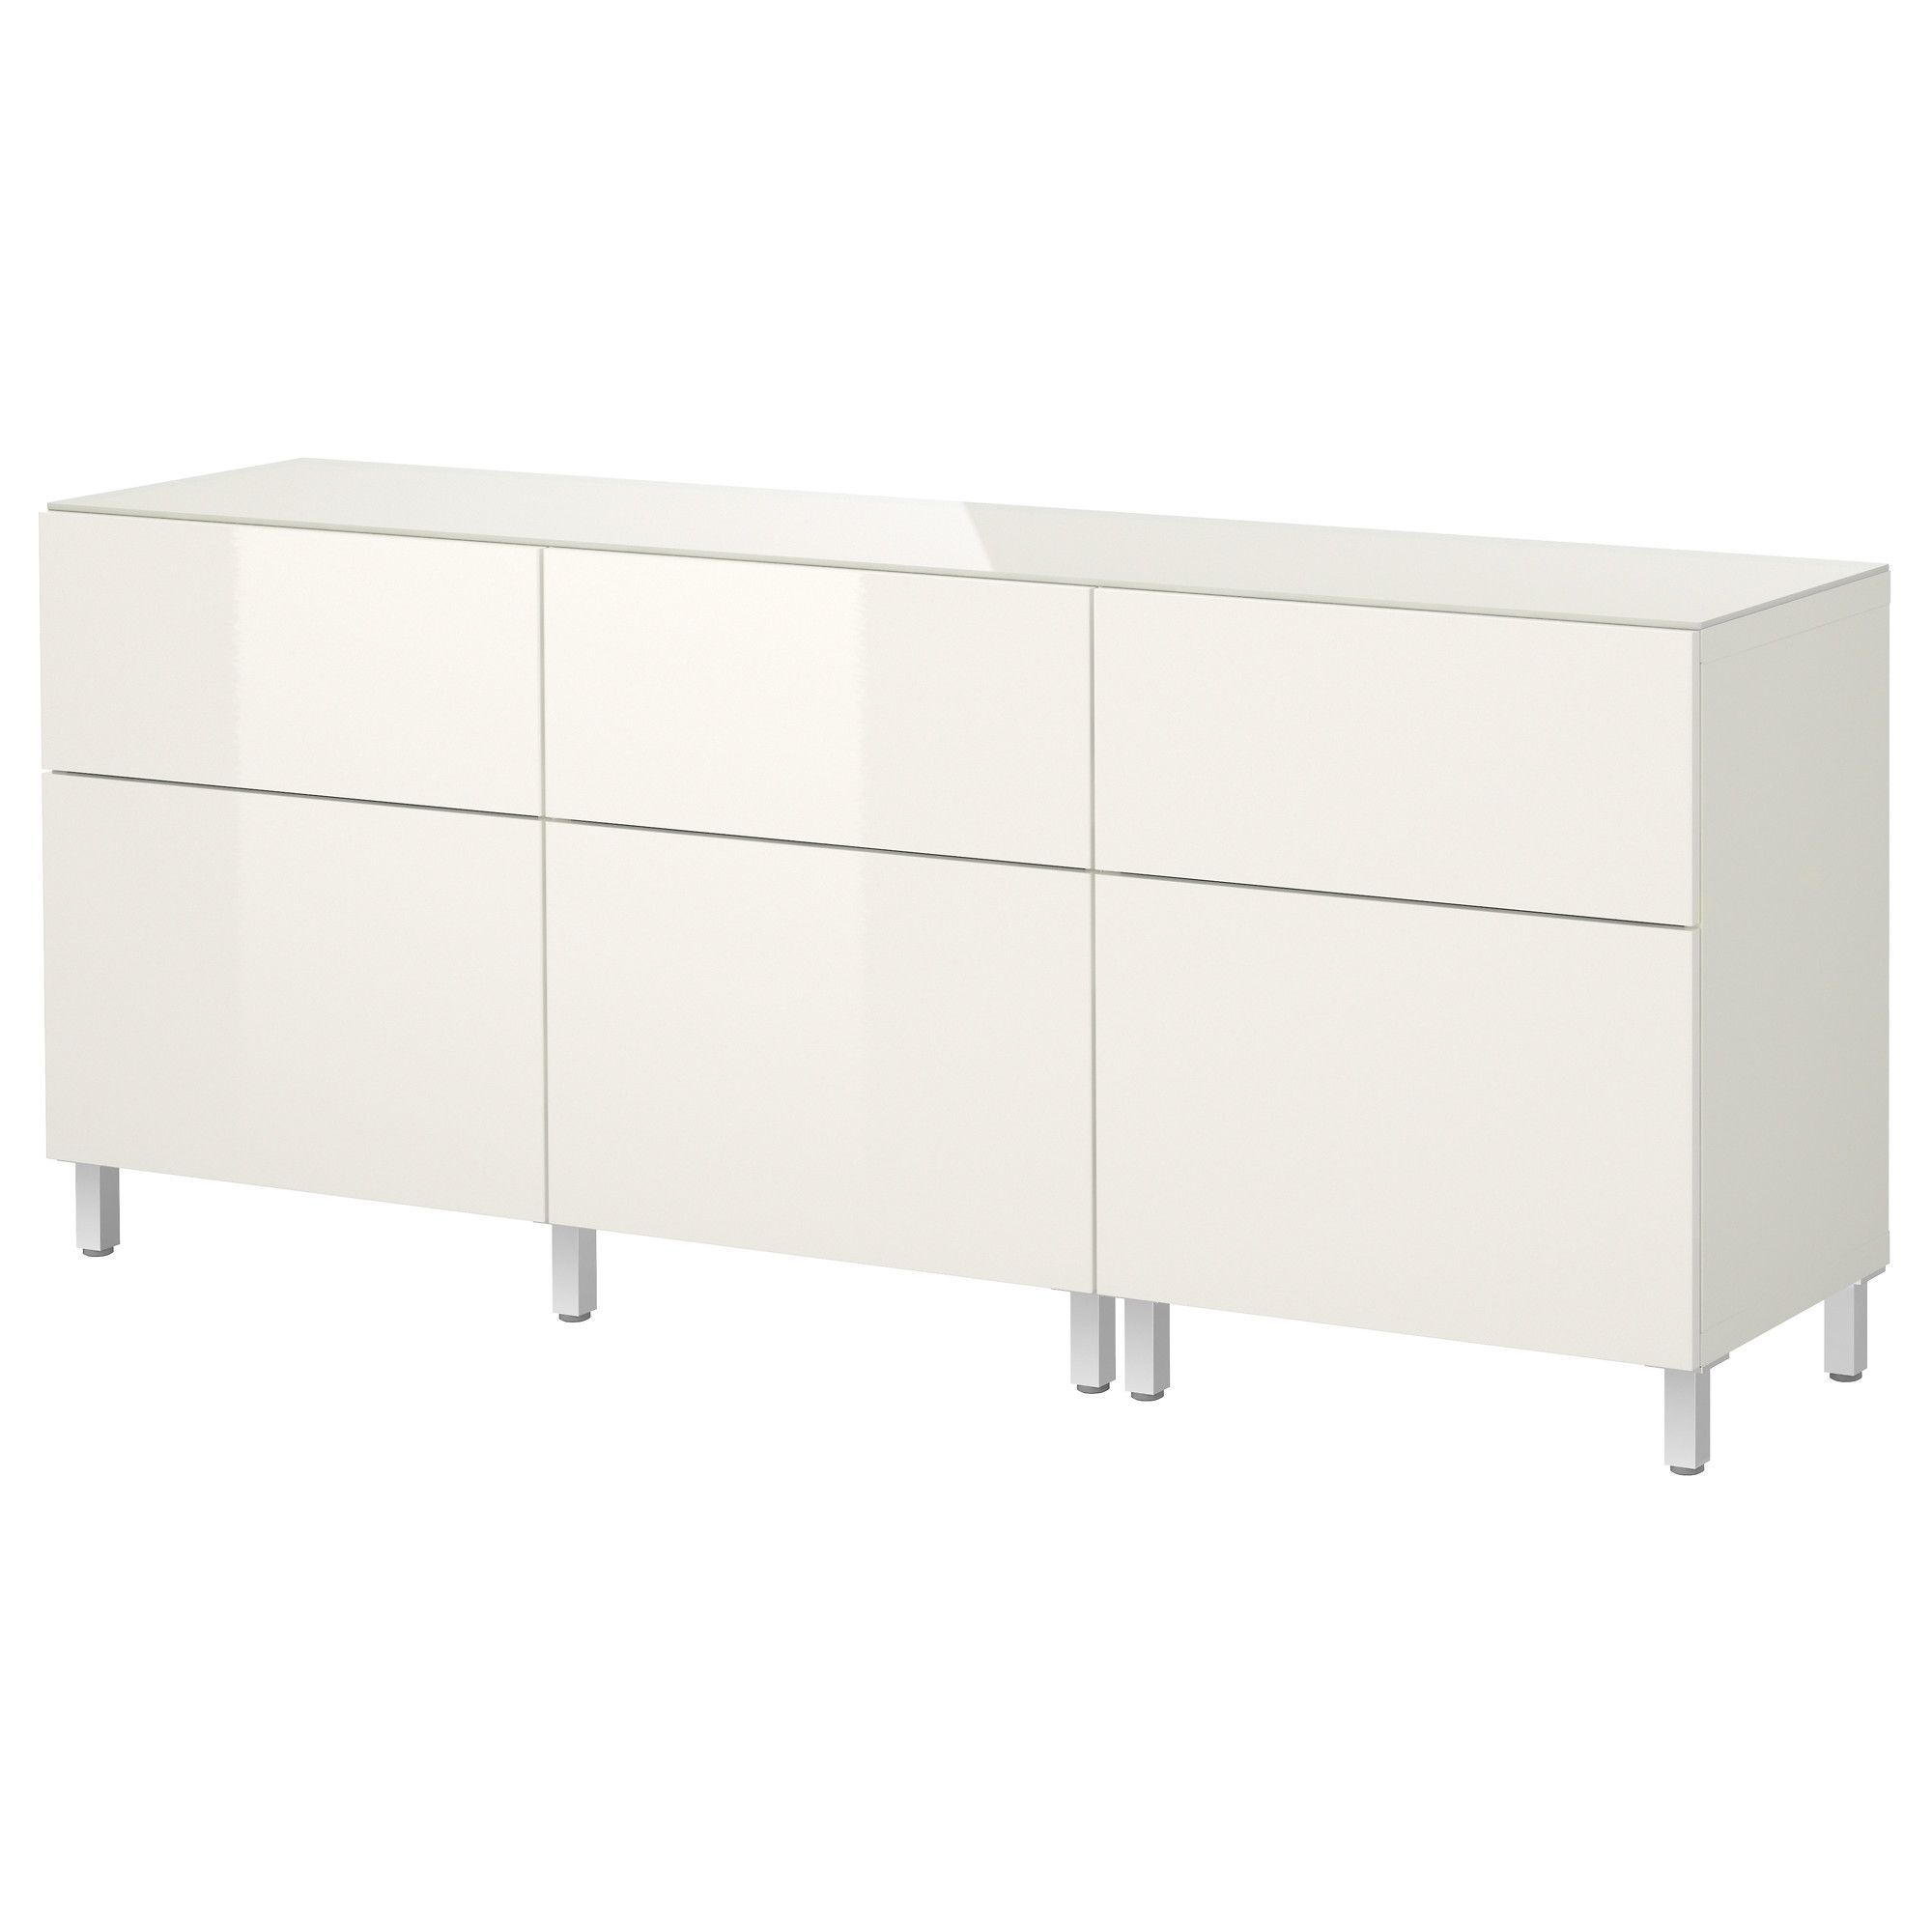 Best Storage Combination W Doors Drawers White Tofta